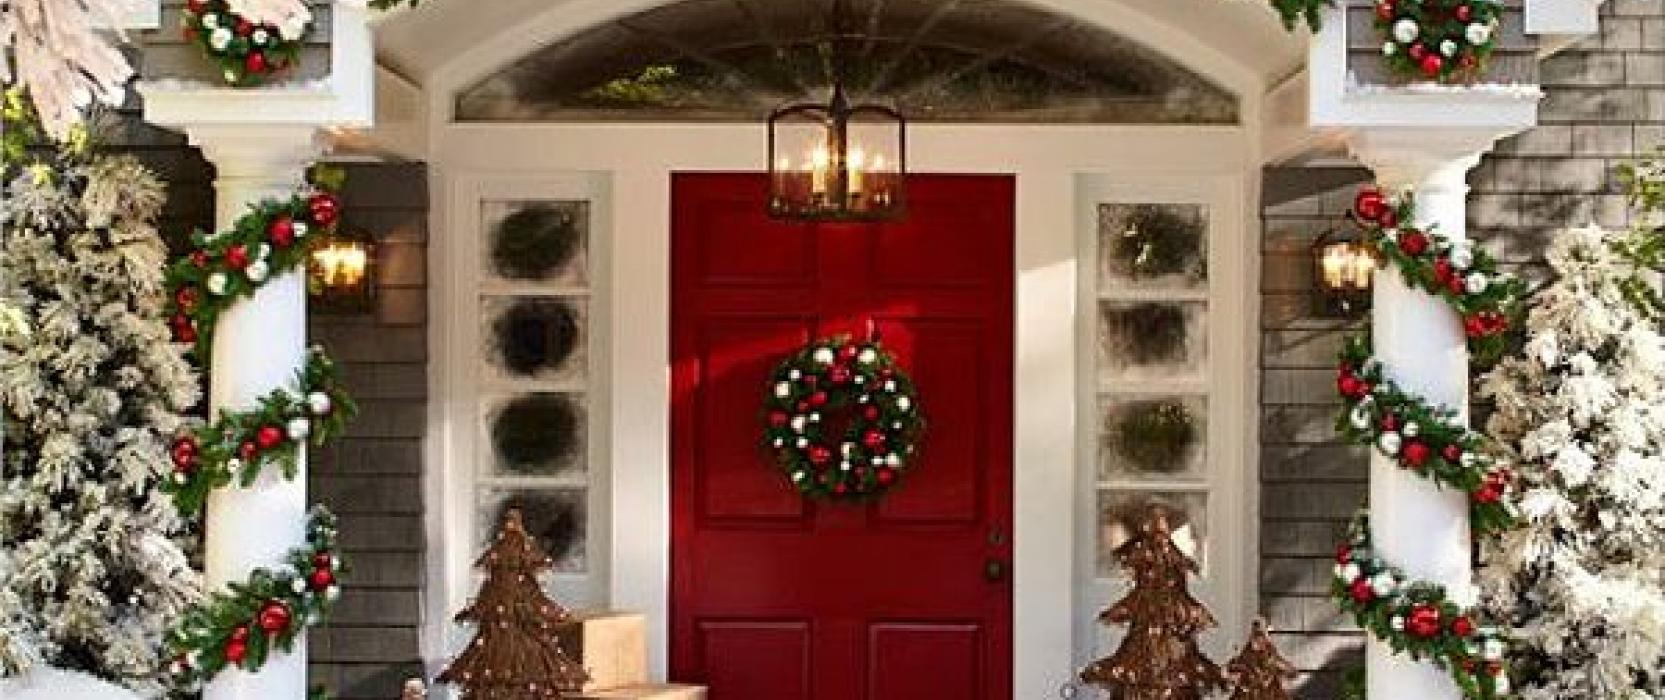 5 Ways to Decorate with Holiday Greens